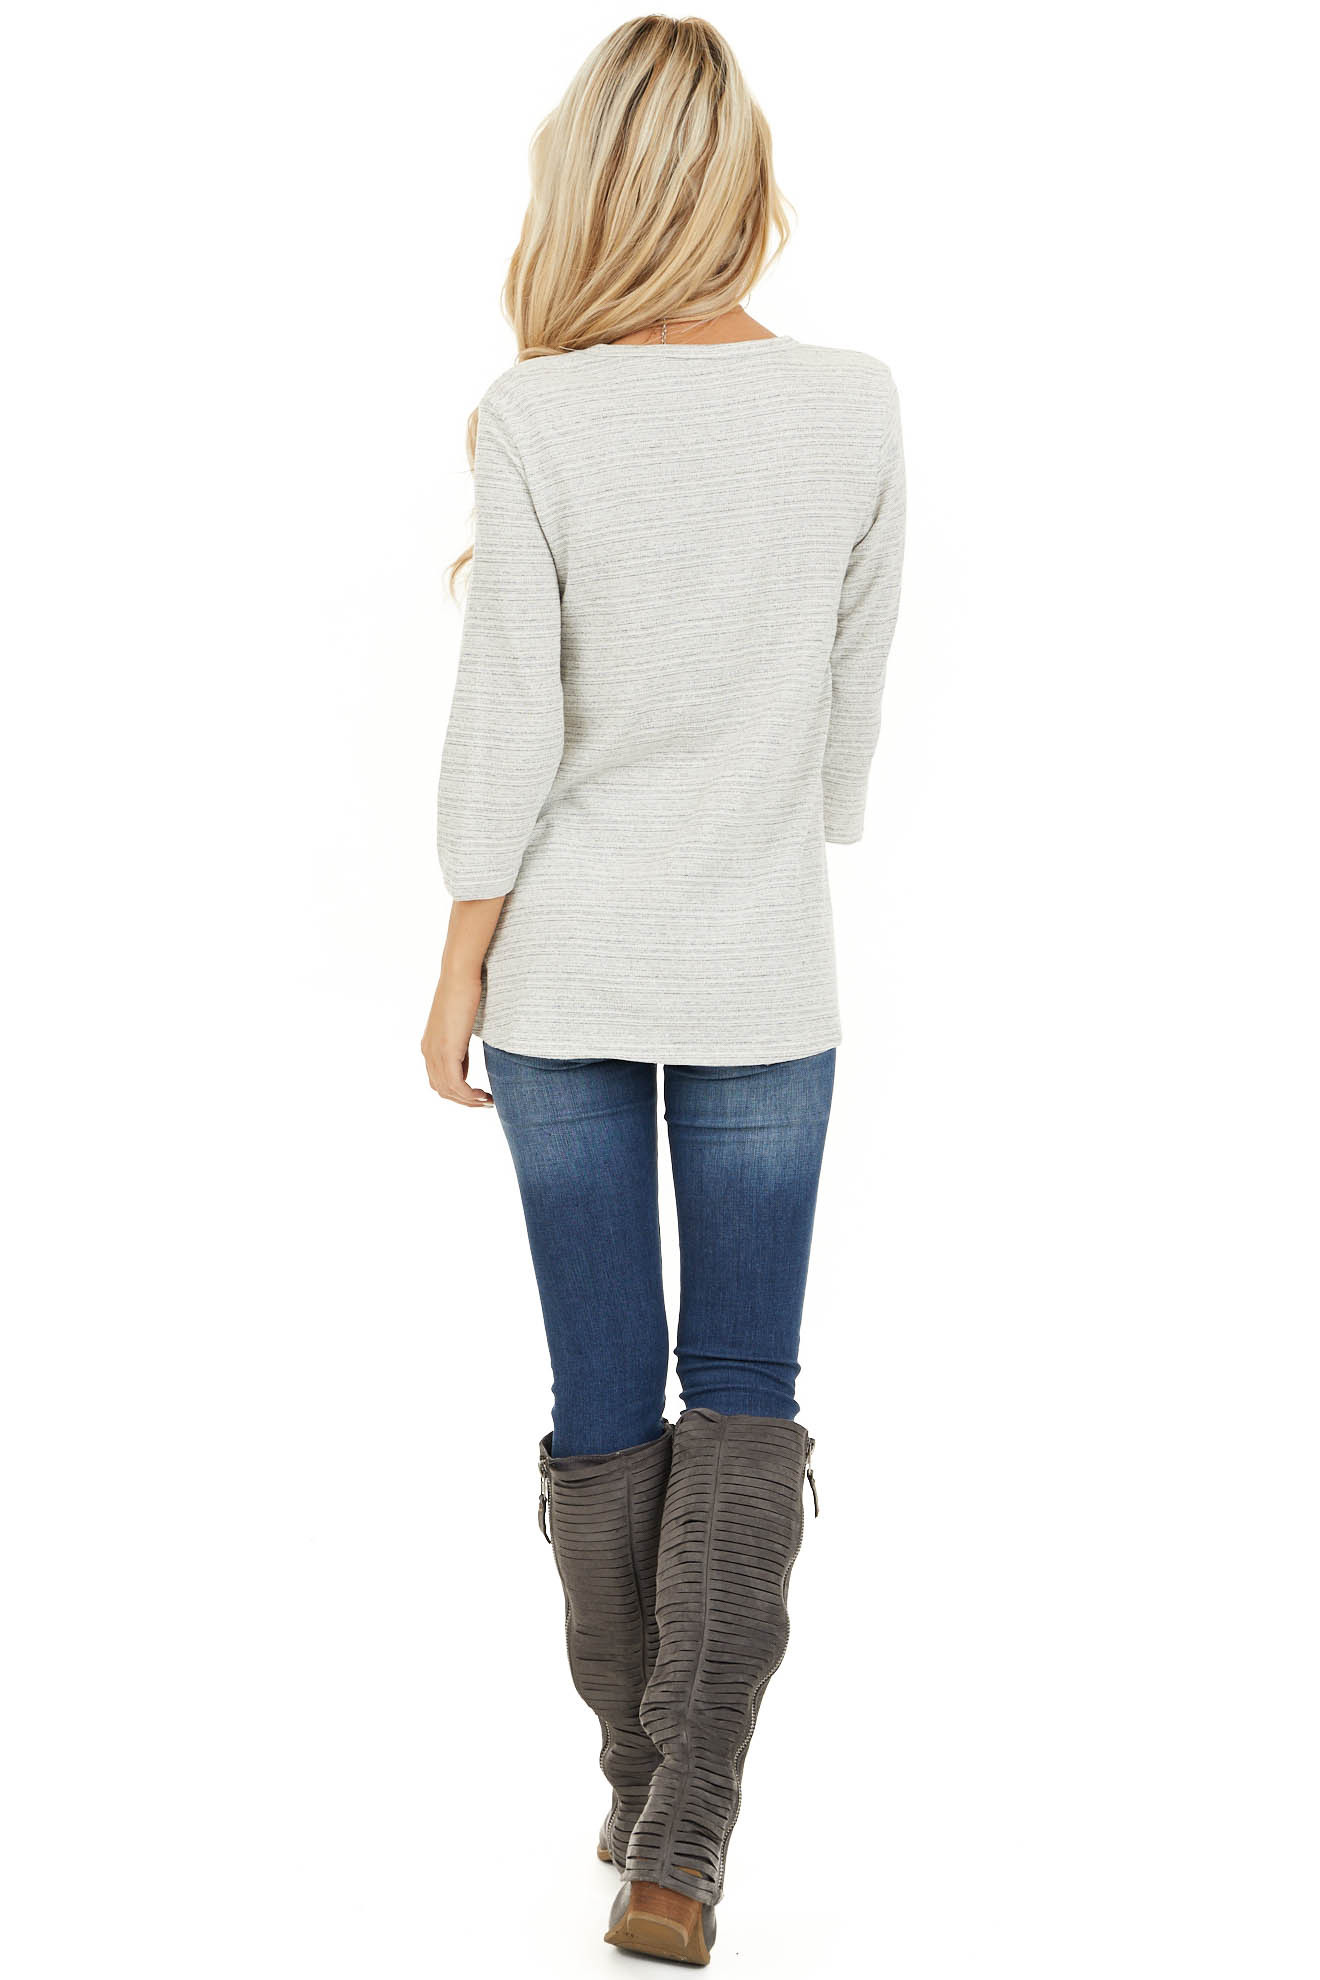 Off White and Light Grey Long Sleeve Top with Front Twist back full body